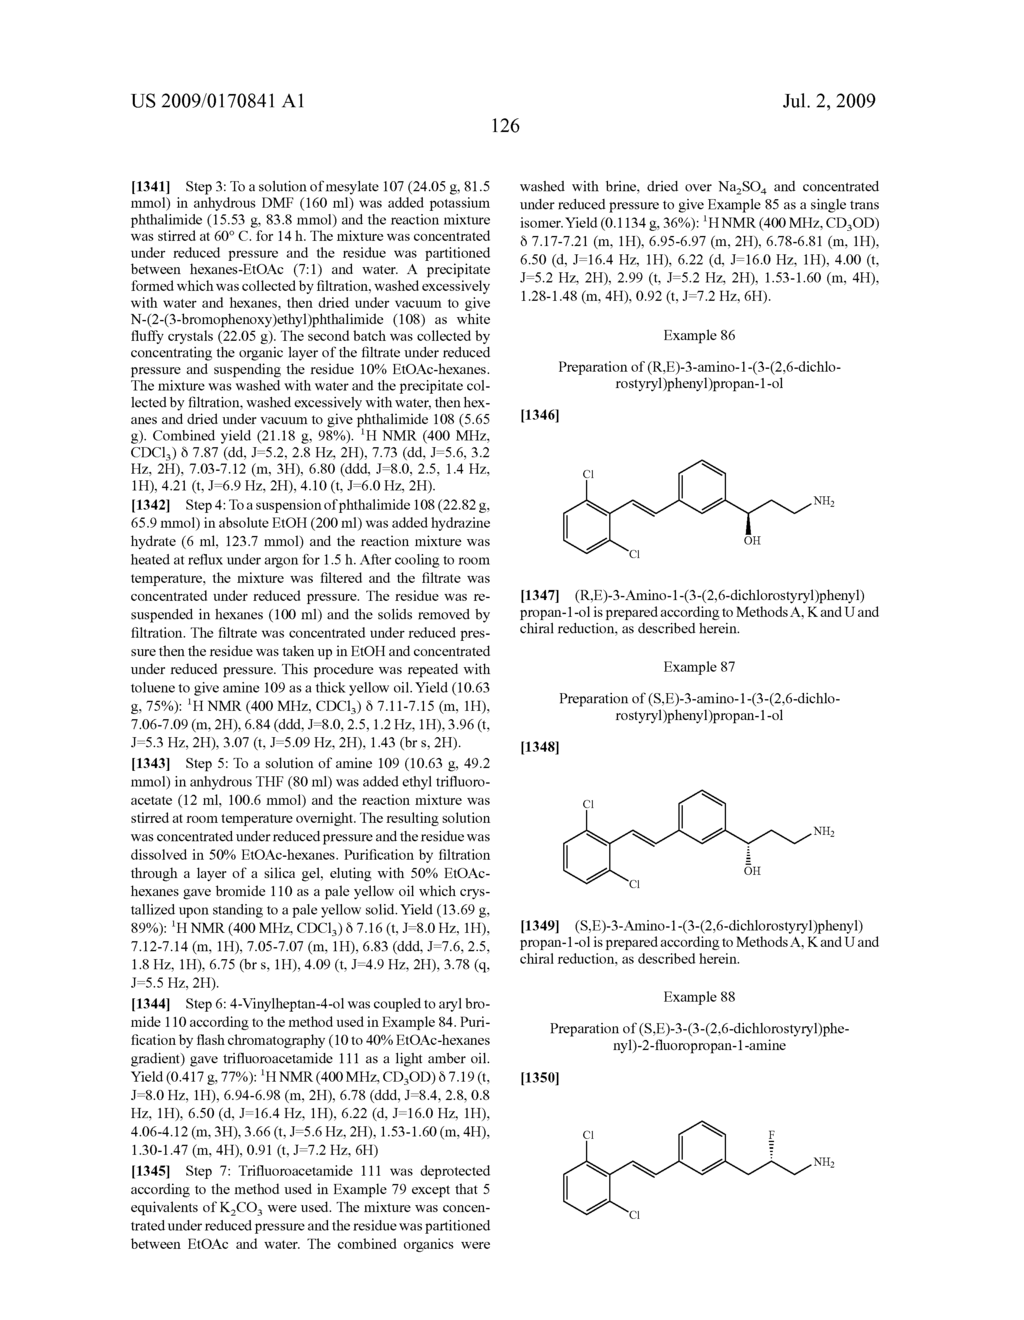 Styrenyl Derivative Compounds for Treating Ophthalmic Diseases and Disorders - diagram, schematic, and image 129